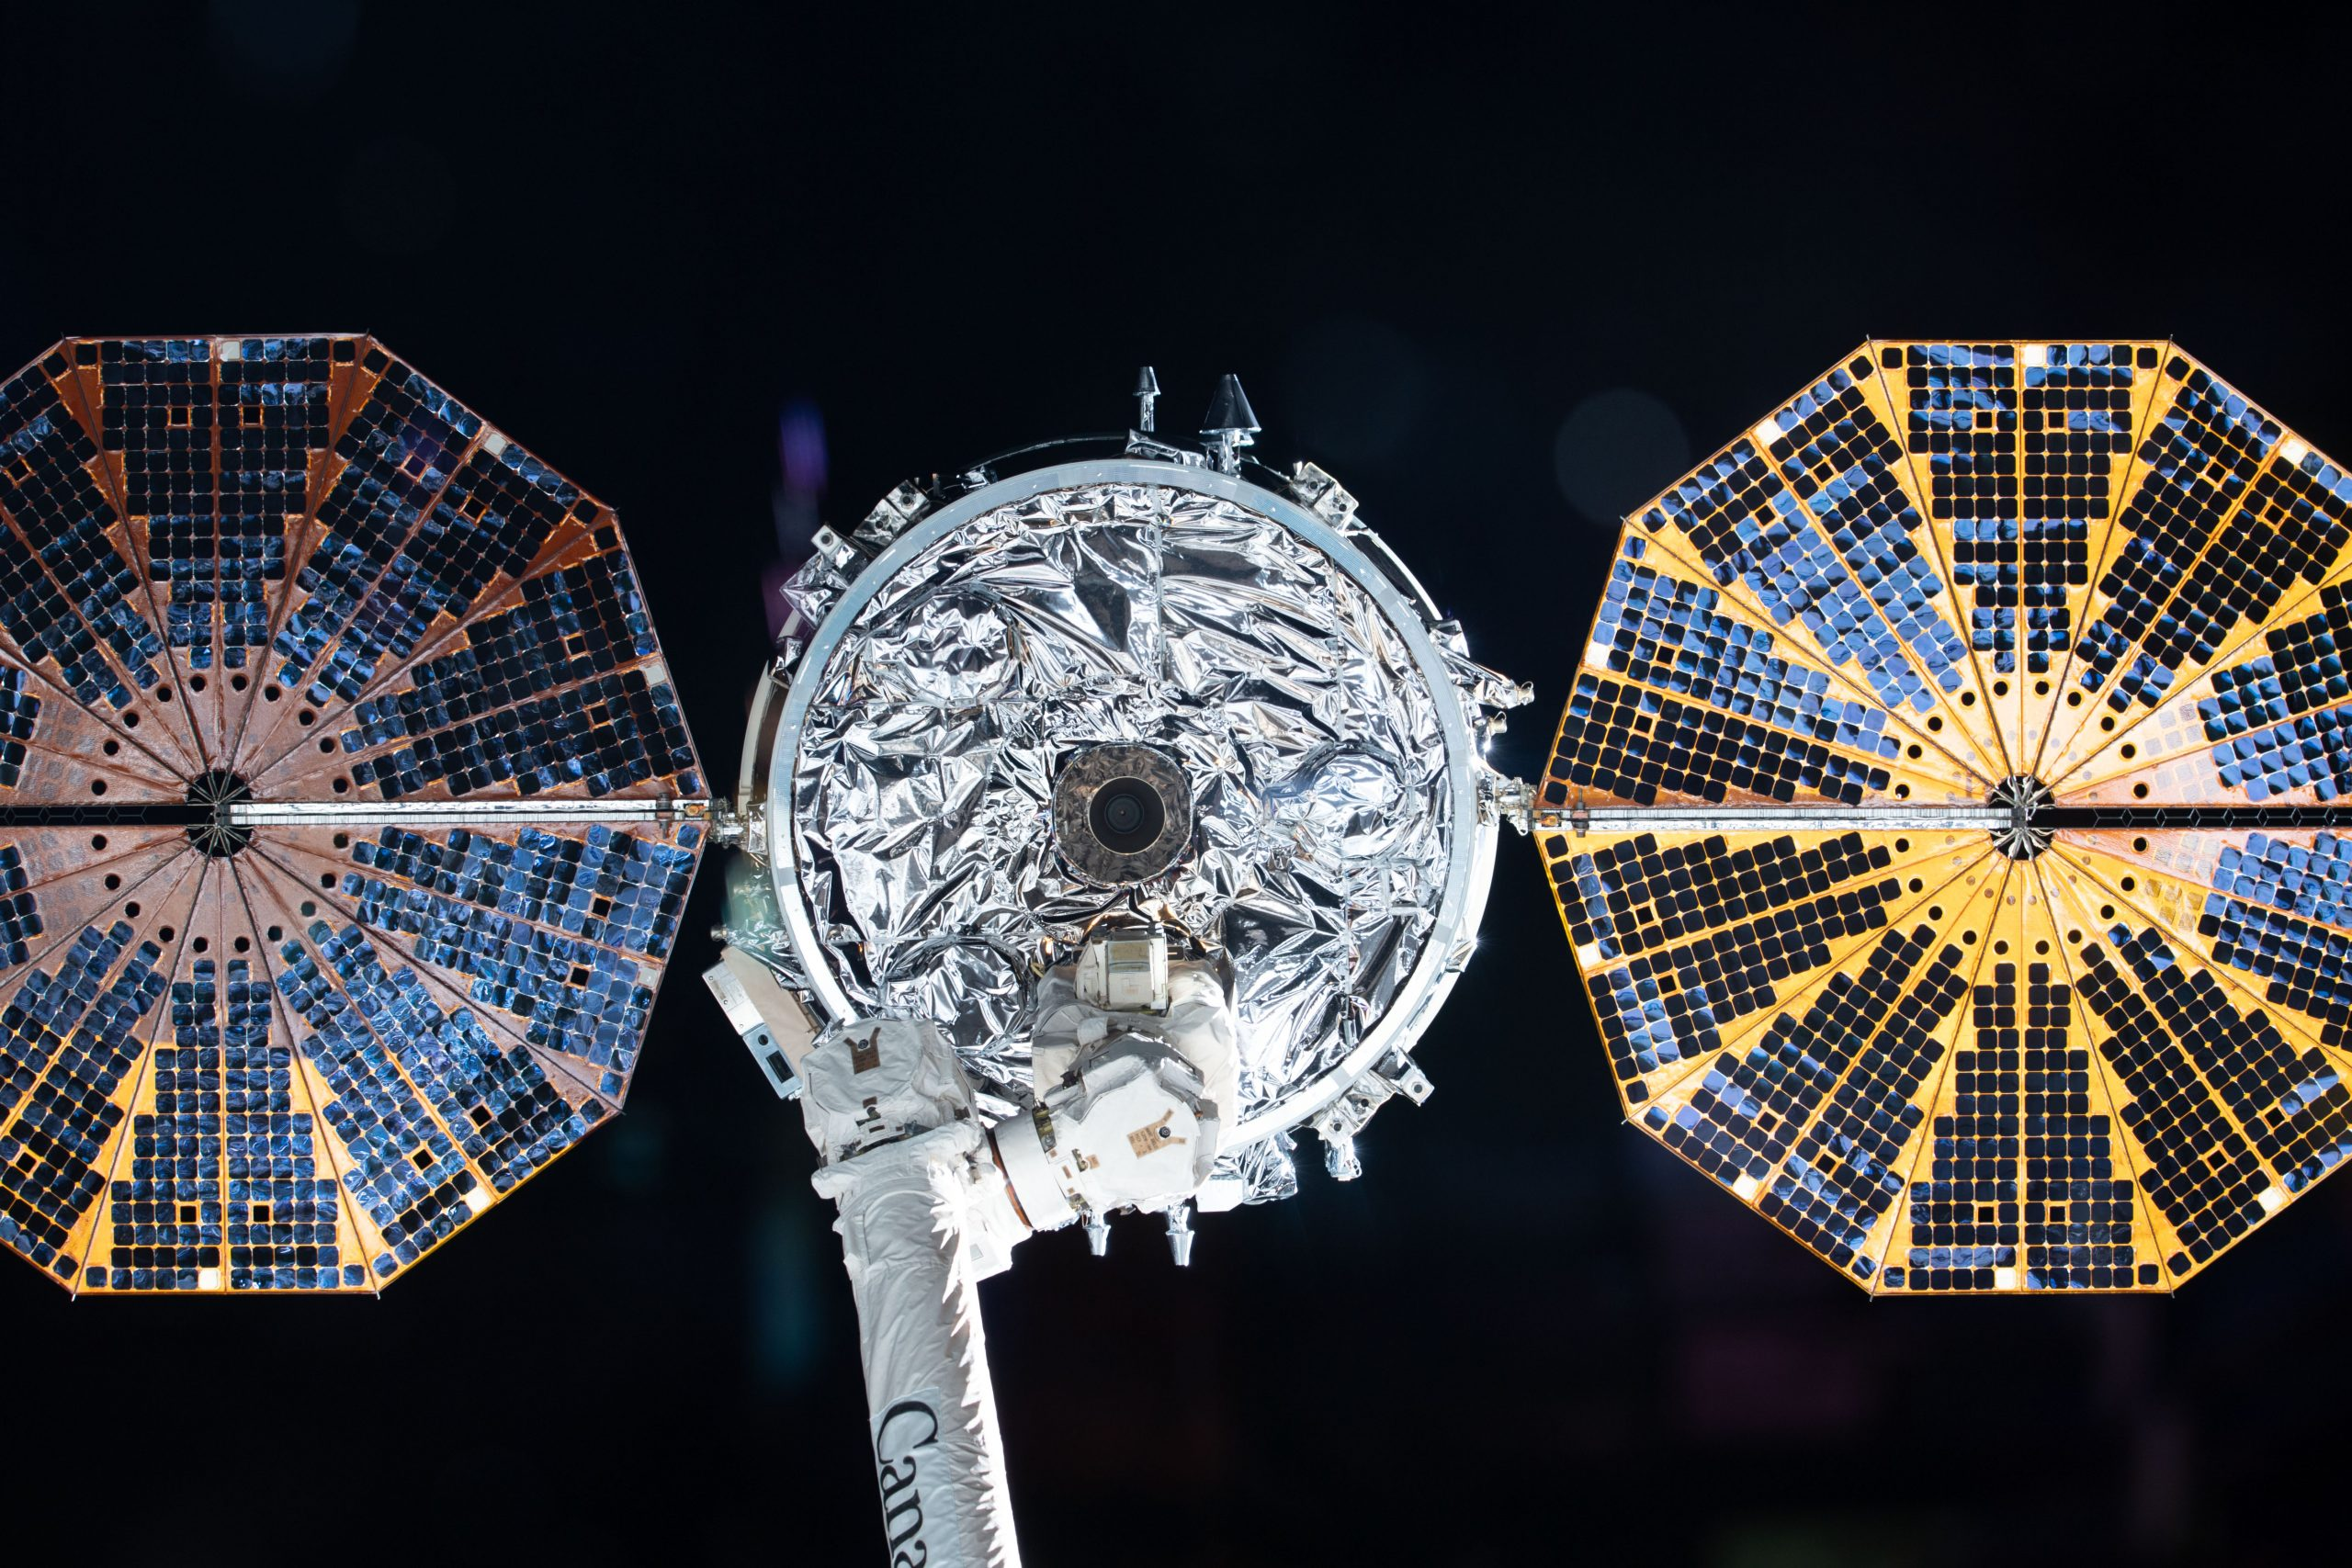 Cygnus Says Farewell to the Space Station